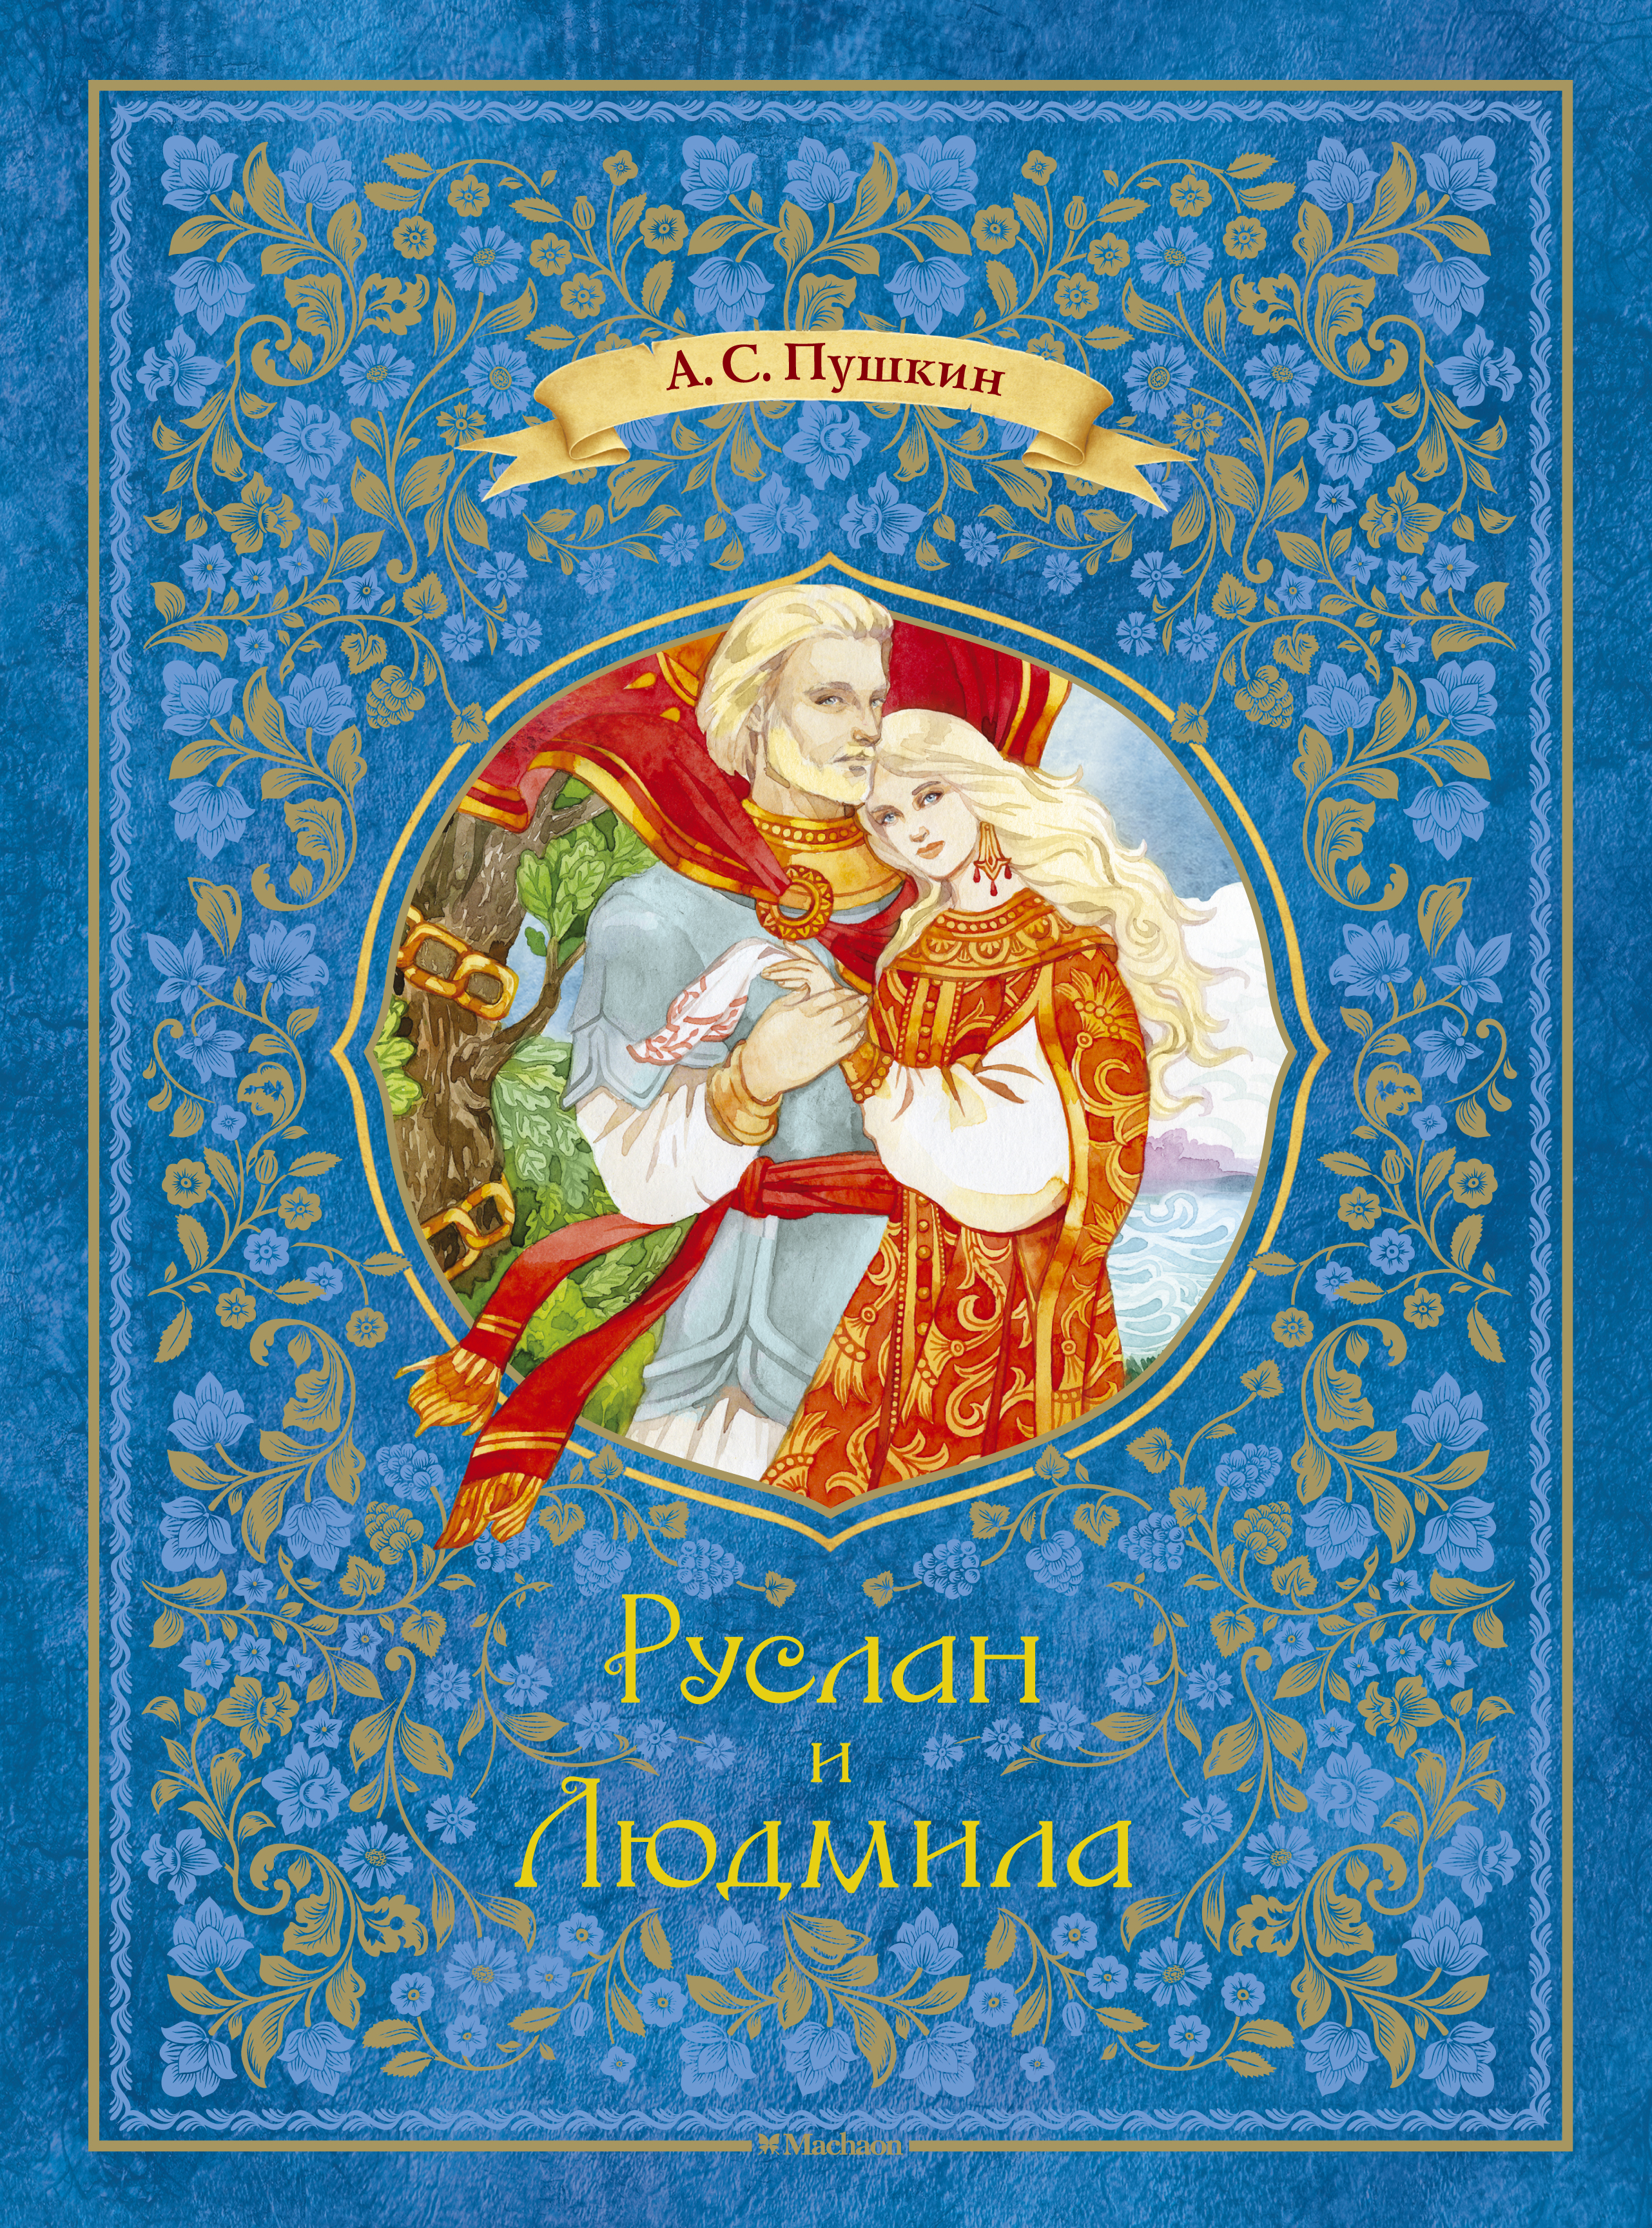 Editions of Ruslan and Ludmila by Alexander Pushkin